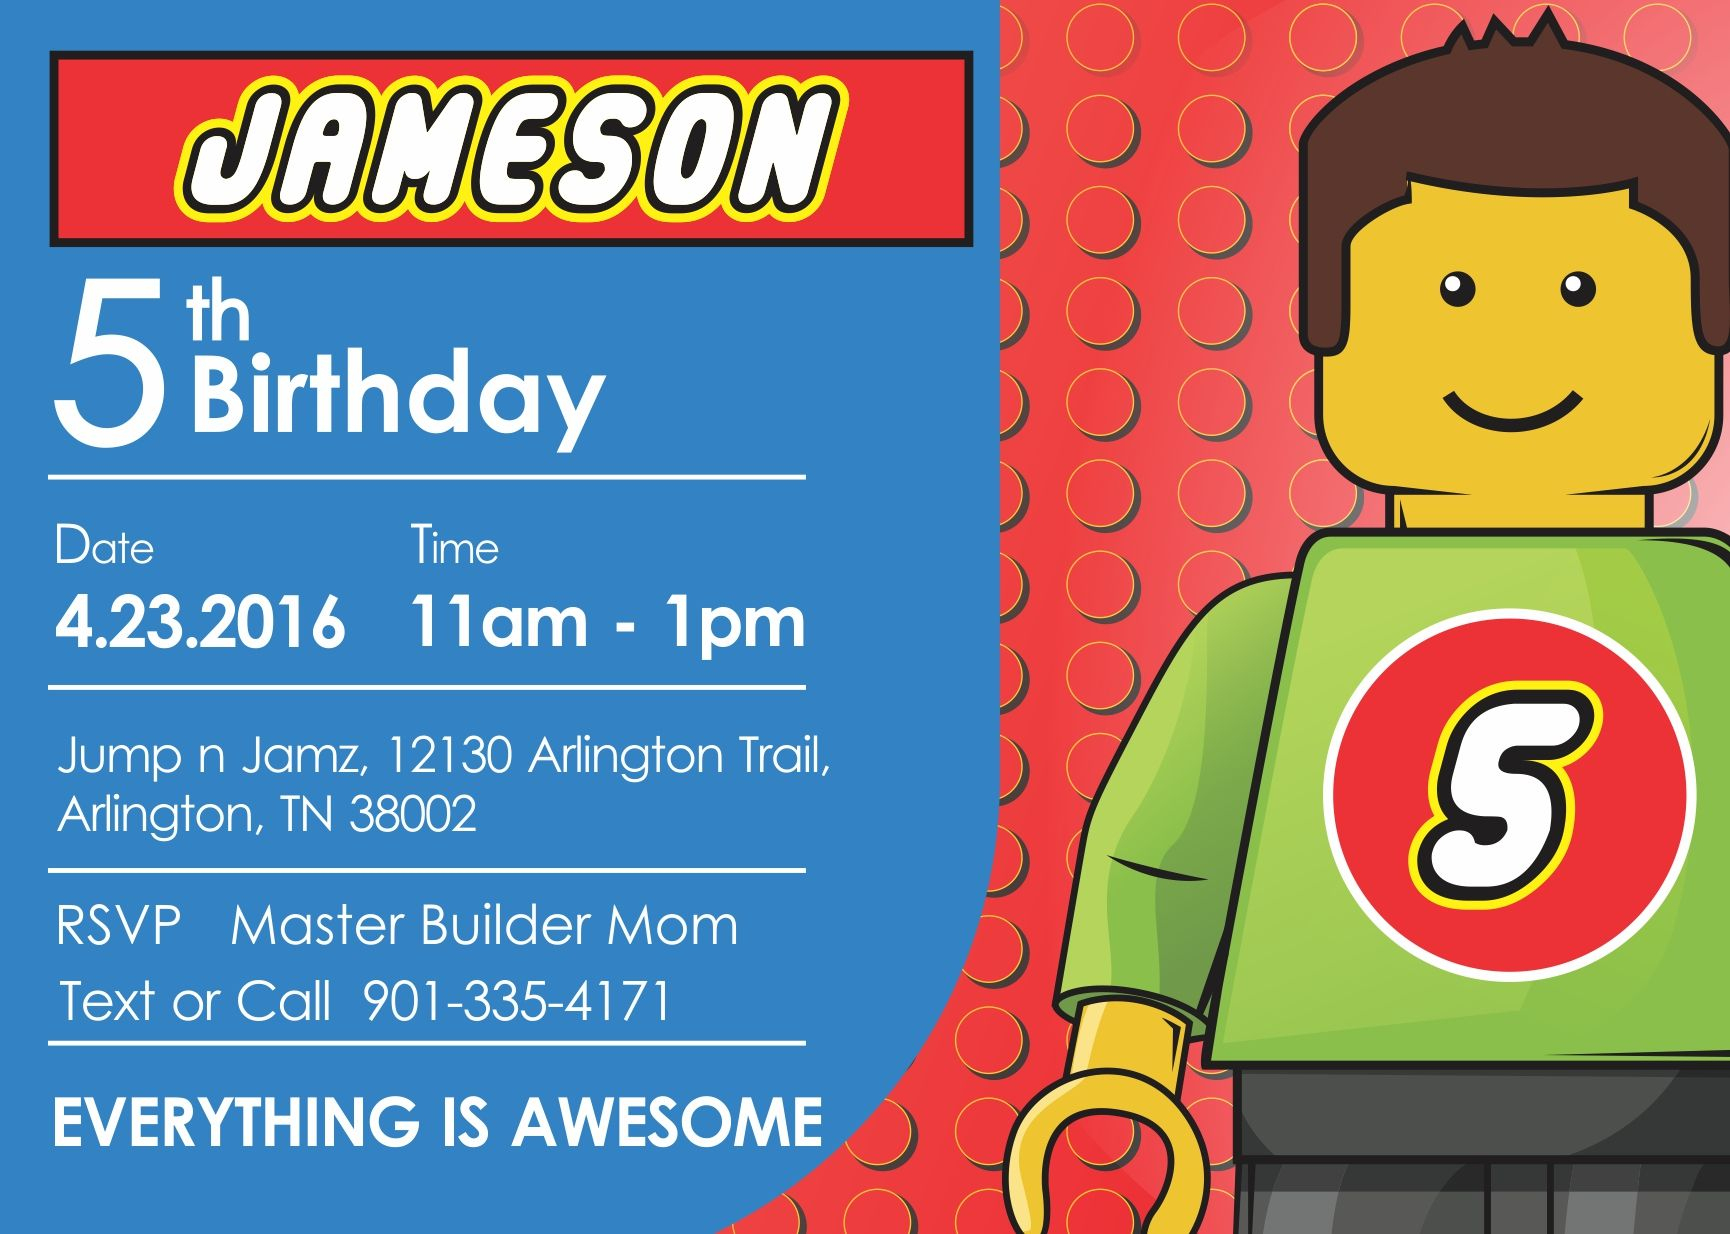 Free Lego Birthday Invitations For Donny | Invitation Ideas Template - Lego Party Invitations Printable Free